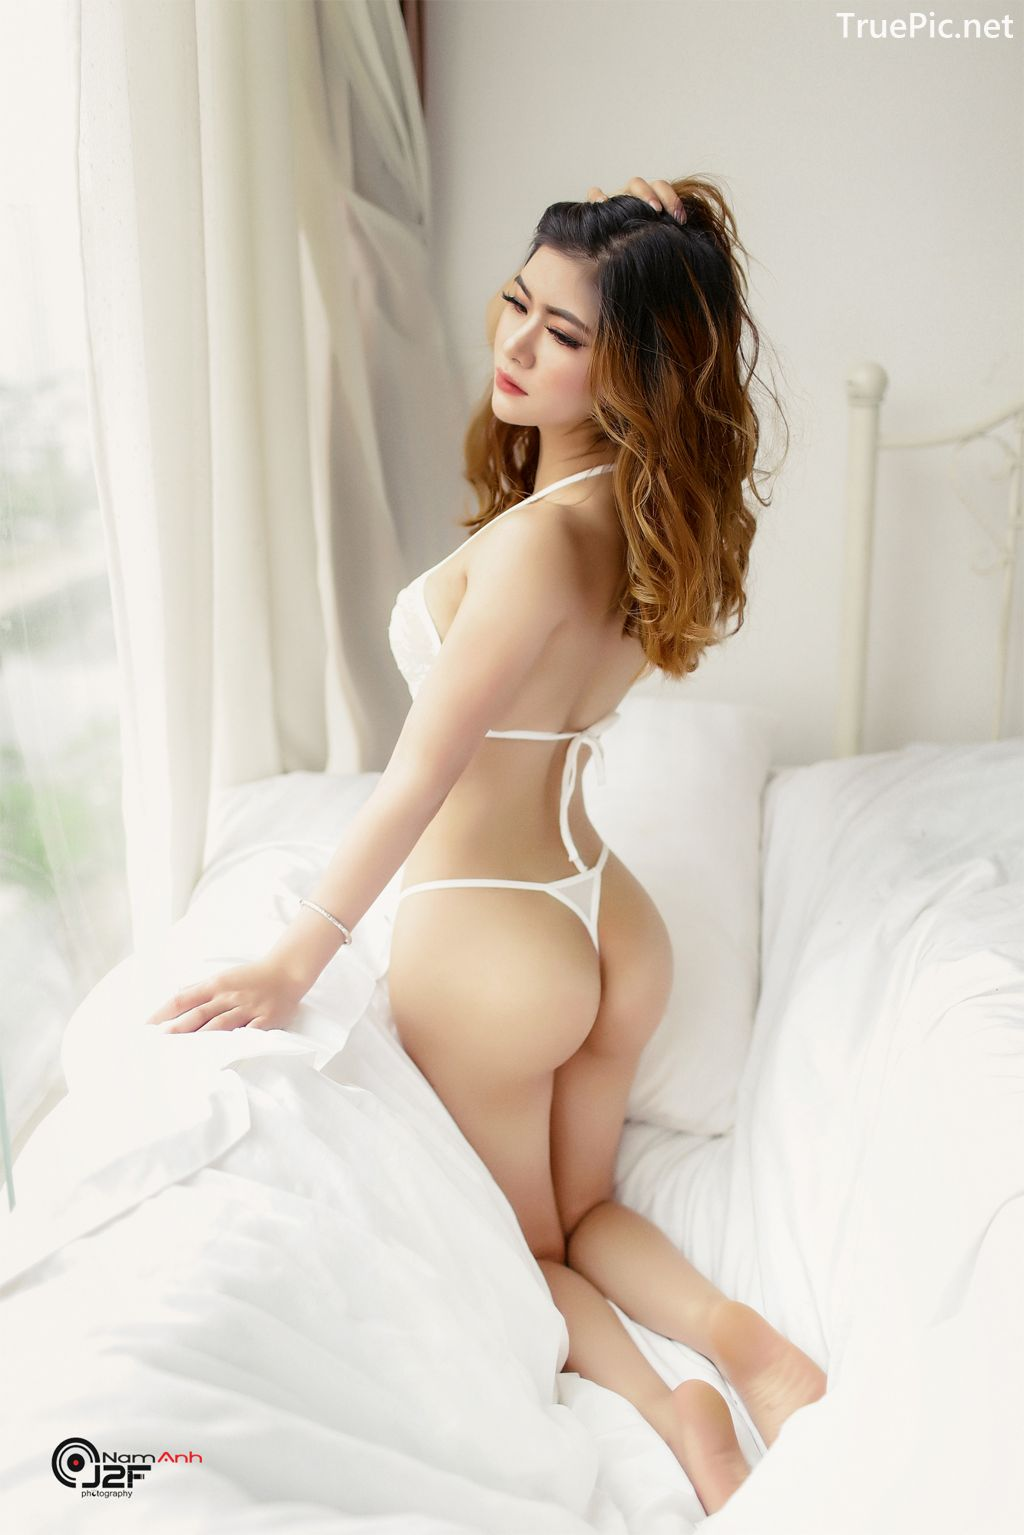 Image-Vietnamese-Model-Sexy-Beauty-of-Beautiful-Girls-Taken-by-NamAnh-Photography-5-TruePic.net- Picture-9